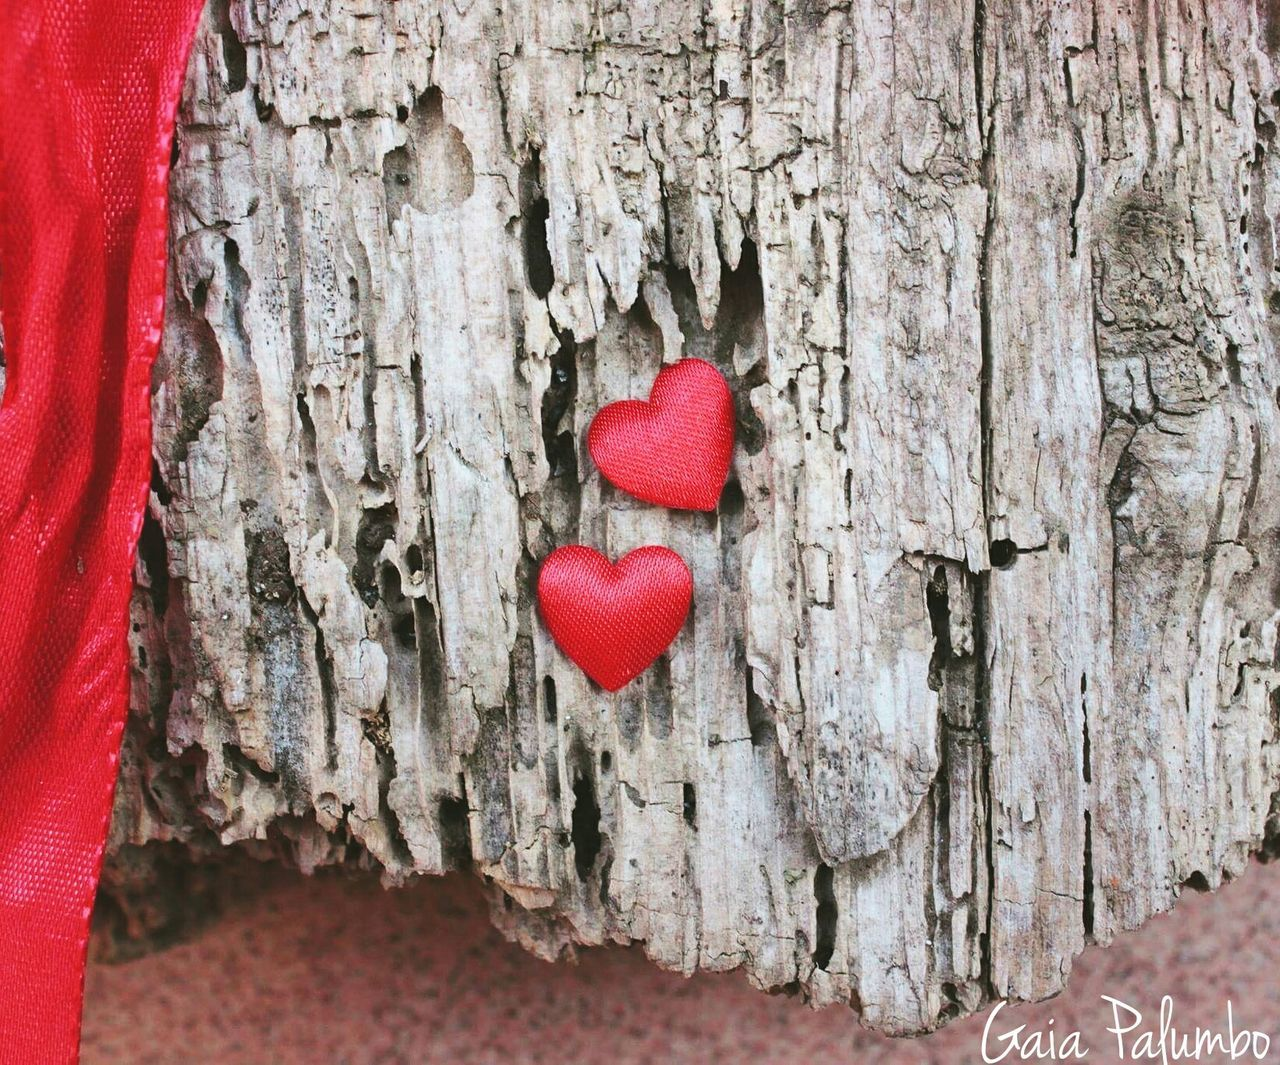 red, heart shape, tree trunk, close-up, wood - material, valentine's day - holiday, love, textured, no people, day, tree, outdoors, nature